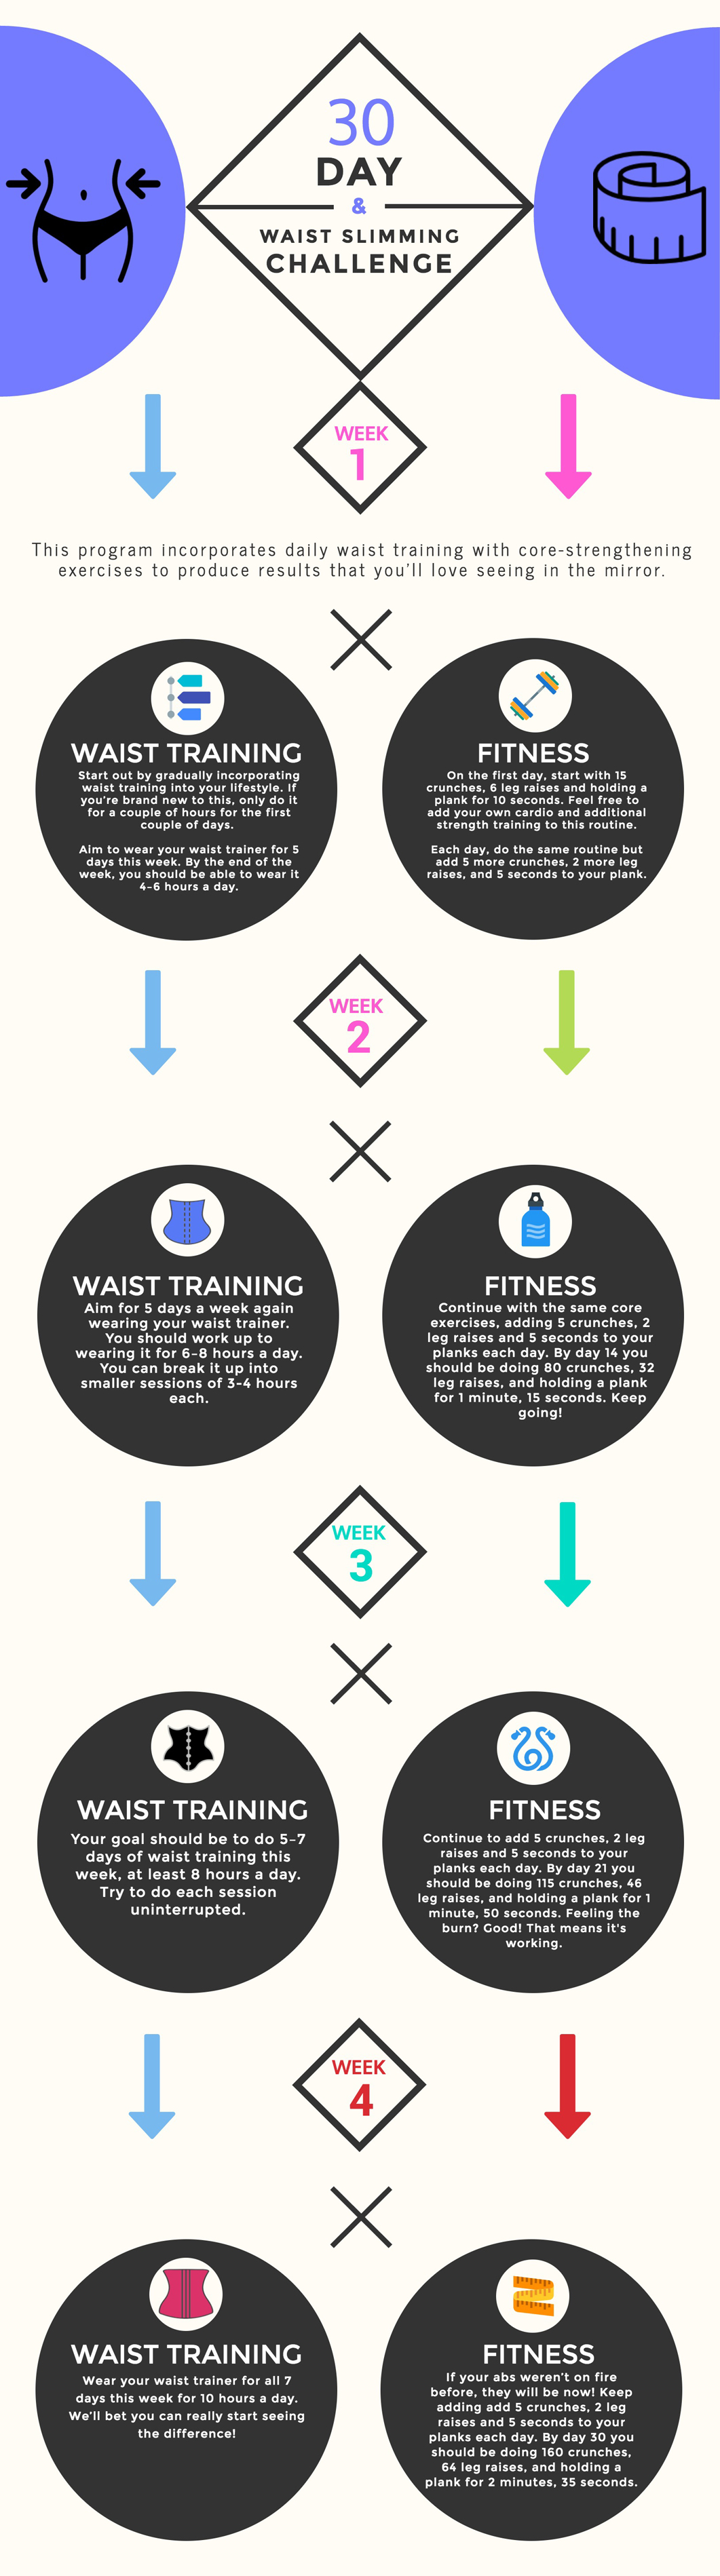 Core-strengthening fitness and waist training challenge